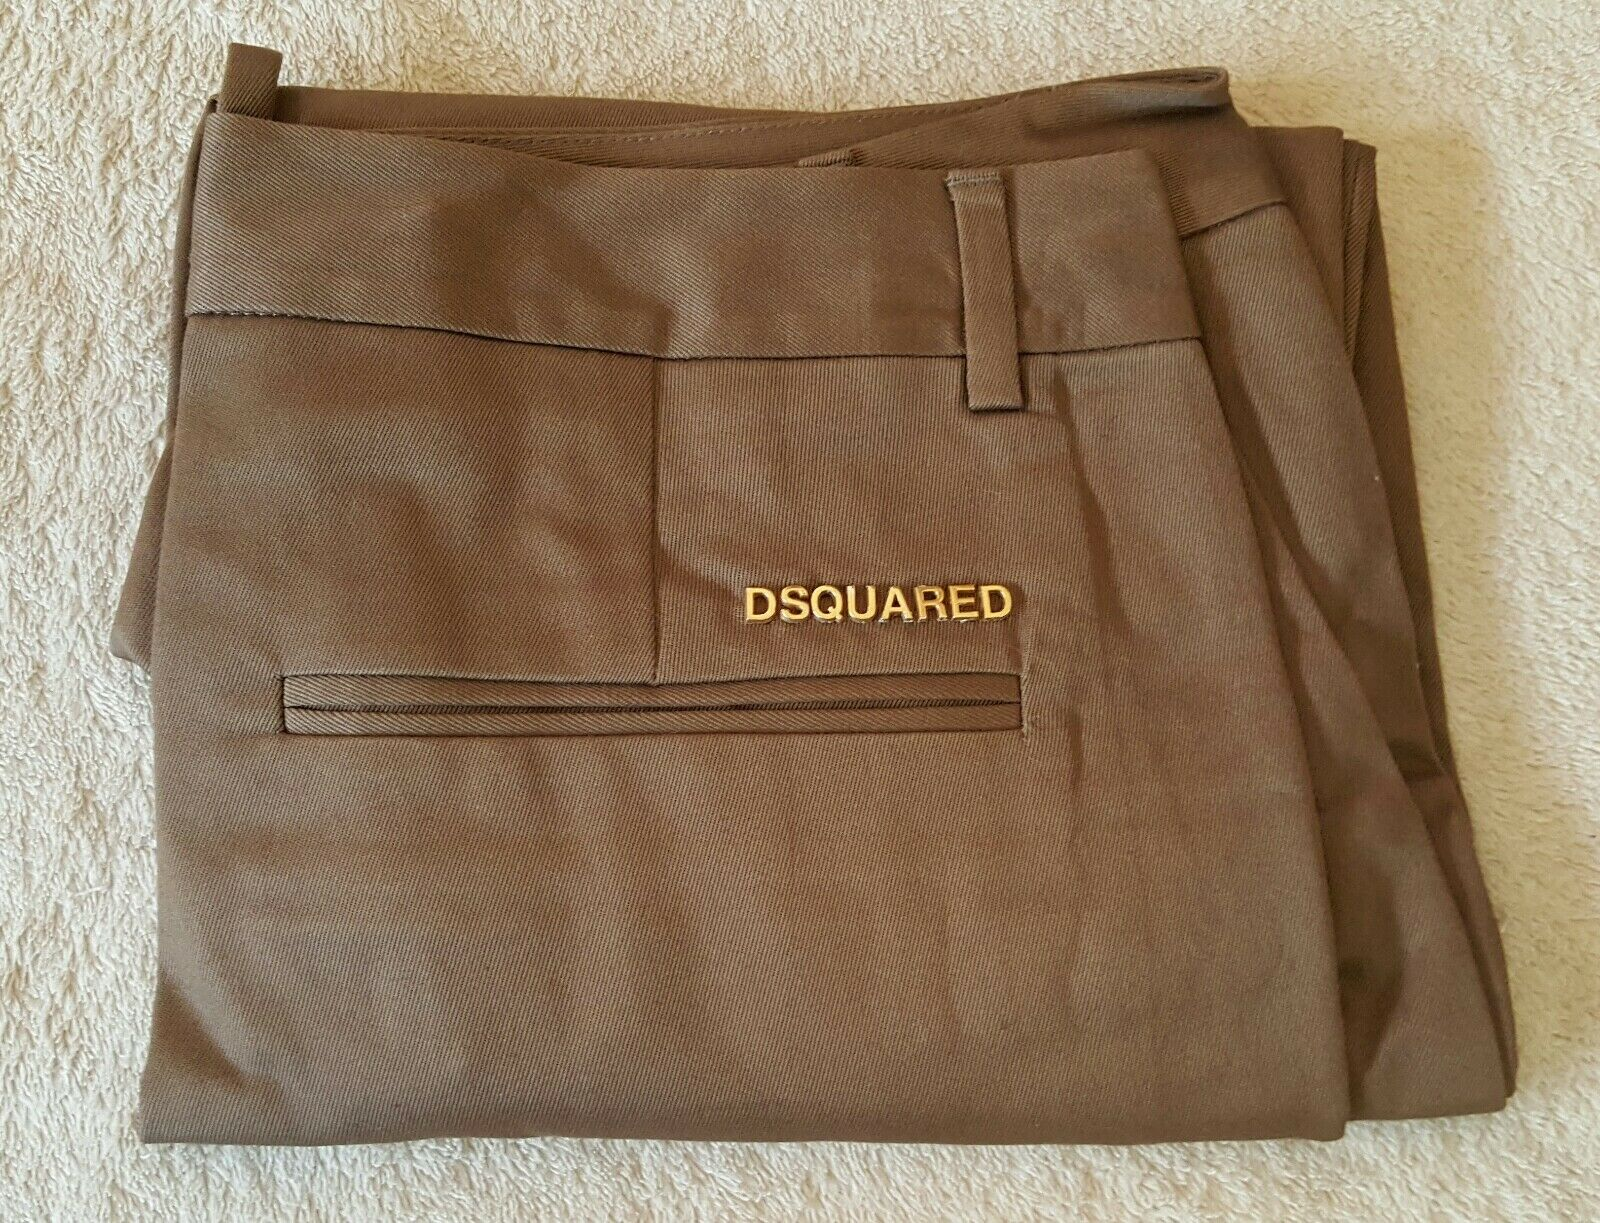 Dsquared Tobacco Brown Trousers Twill Dress Pants 40 IT Cotton Womens